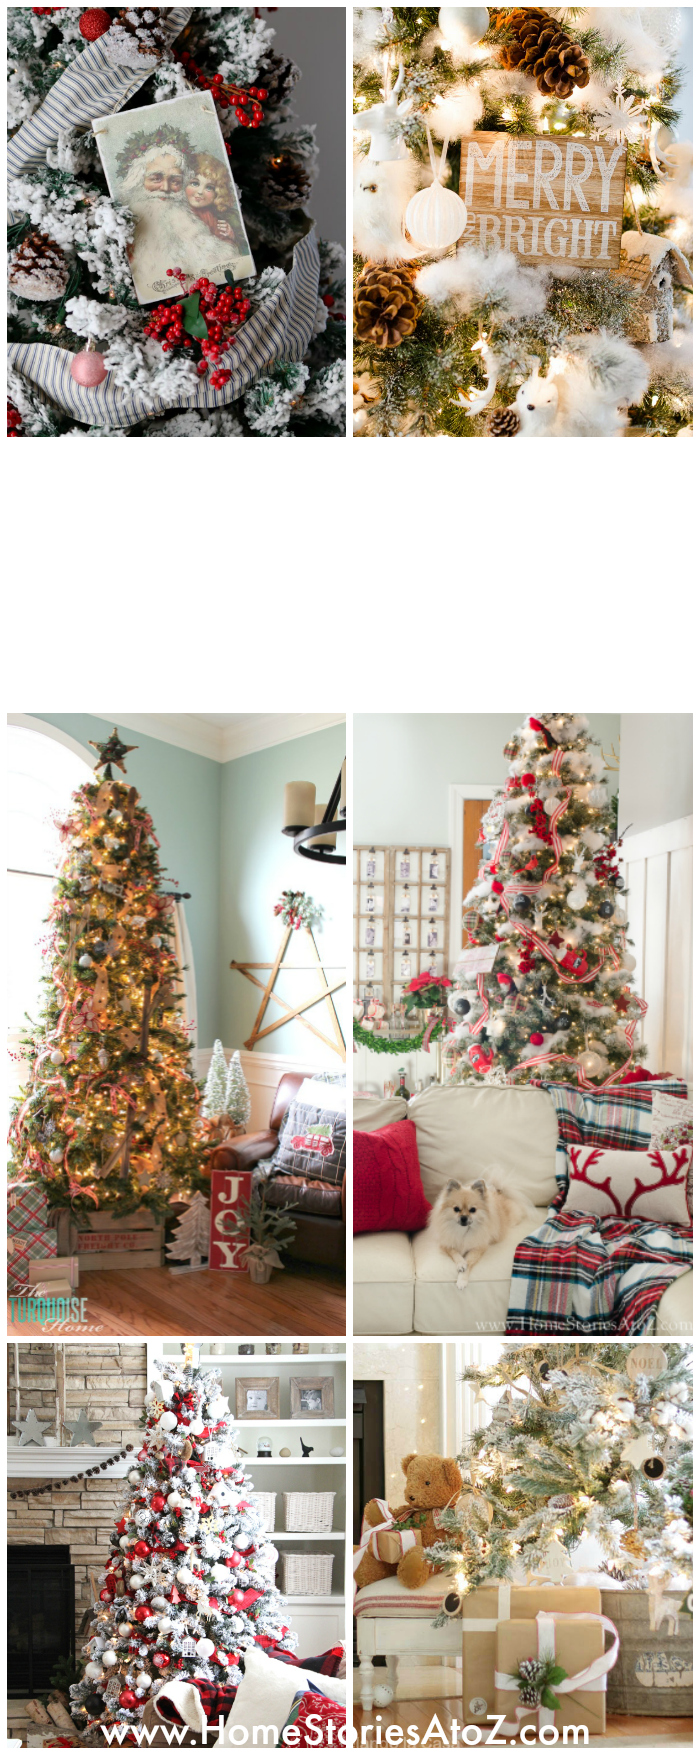 20 beautiful christmas tree ideas home stories a to z House beautiful christmas trees